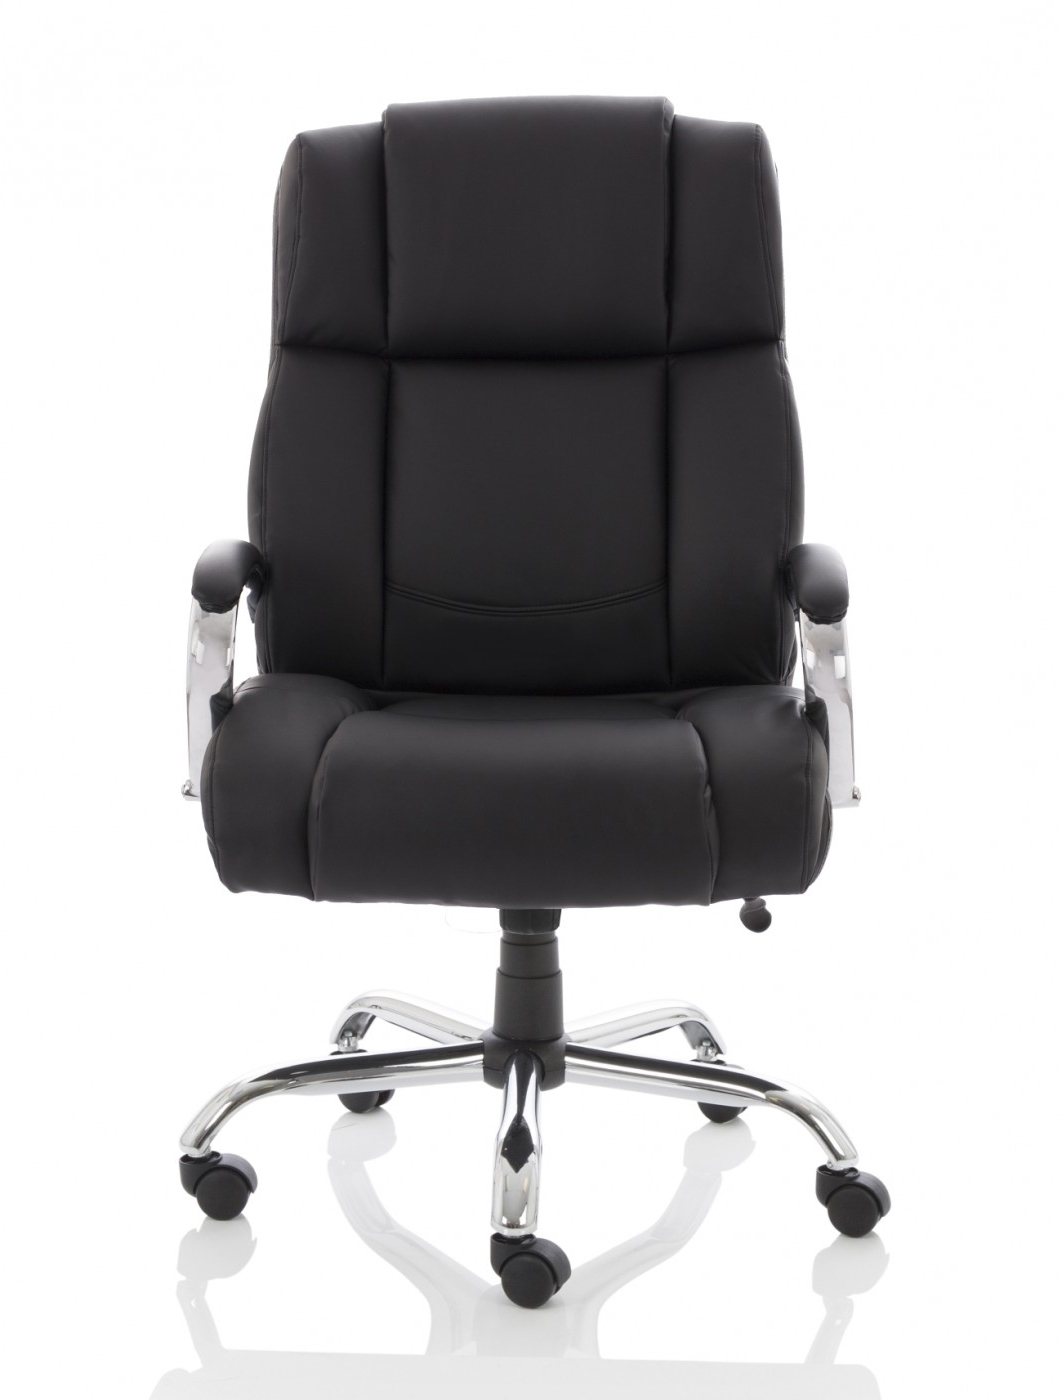 Chair : High Back Executive Leather Office Chair Lumbar Support Regarding Most Up To Date Executive Office Chairs With Back Support (View 4 of 20)